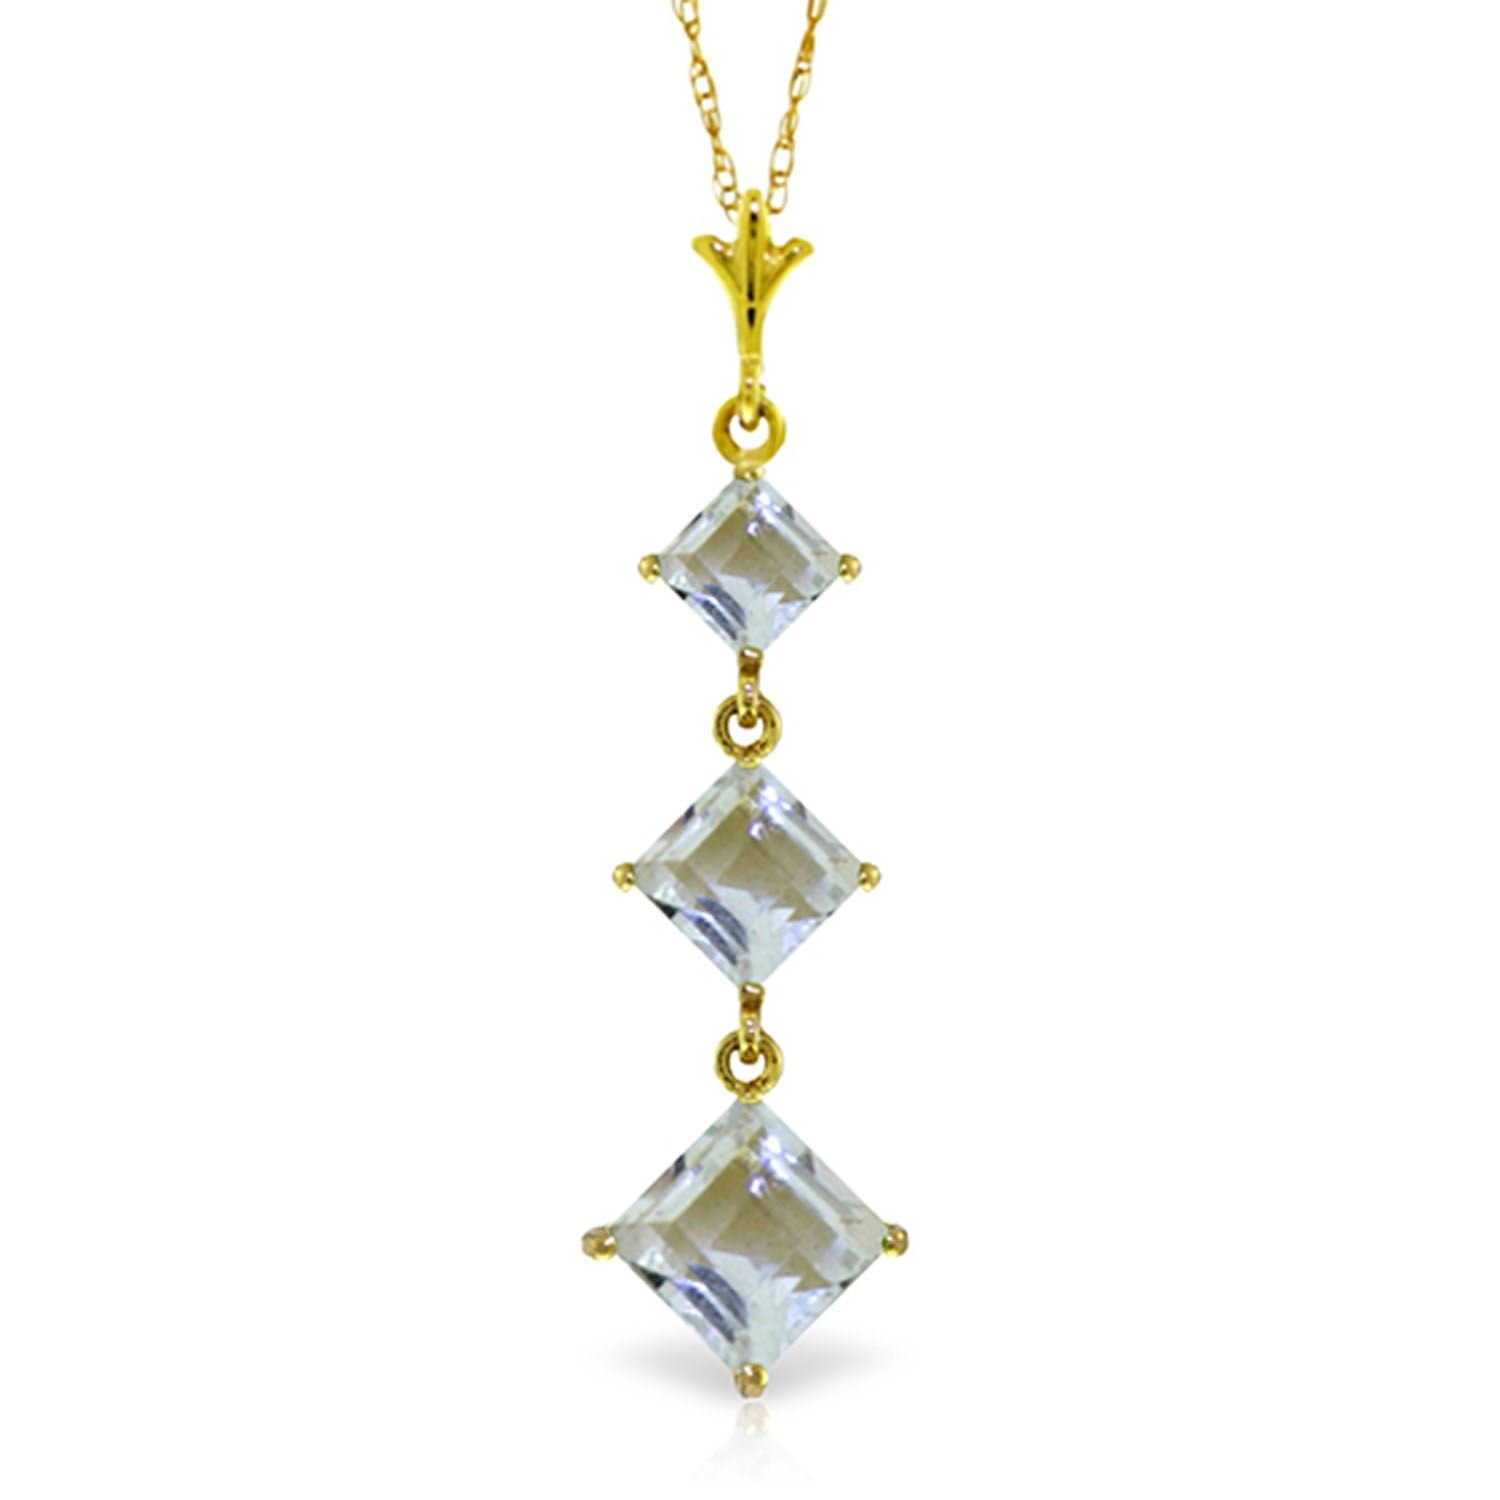 ALARRI 2.4 CTW 14K Solid Gold Love Lock Aquamarine Necklace with 18 Inch Chain Length